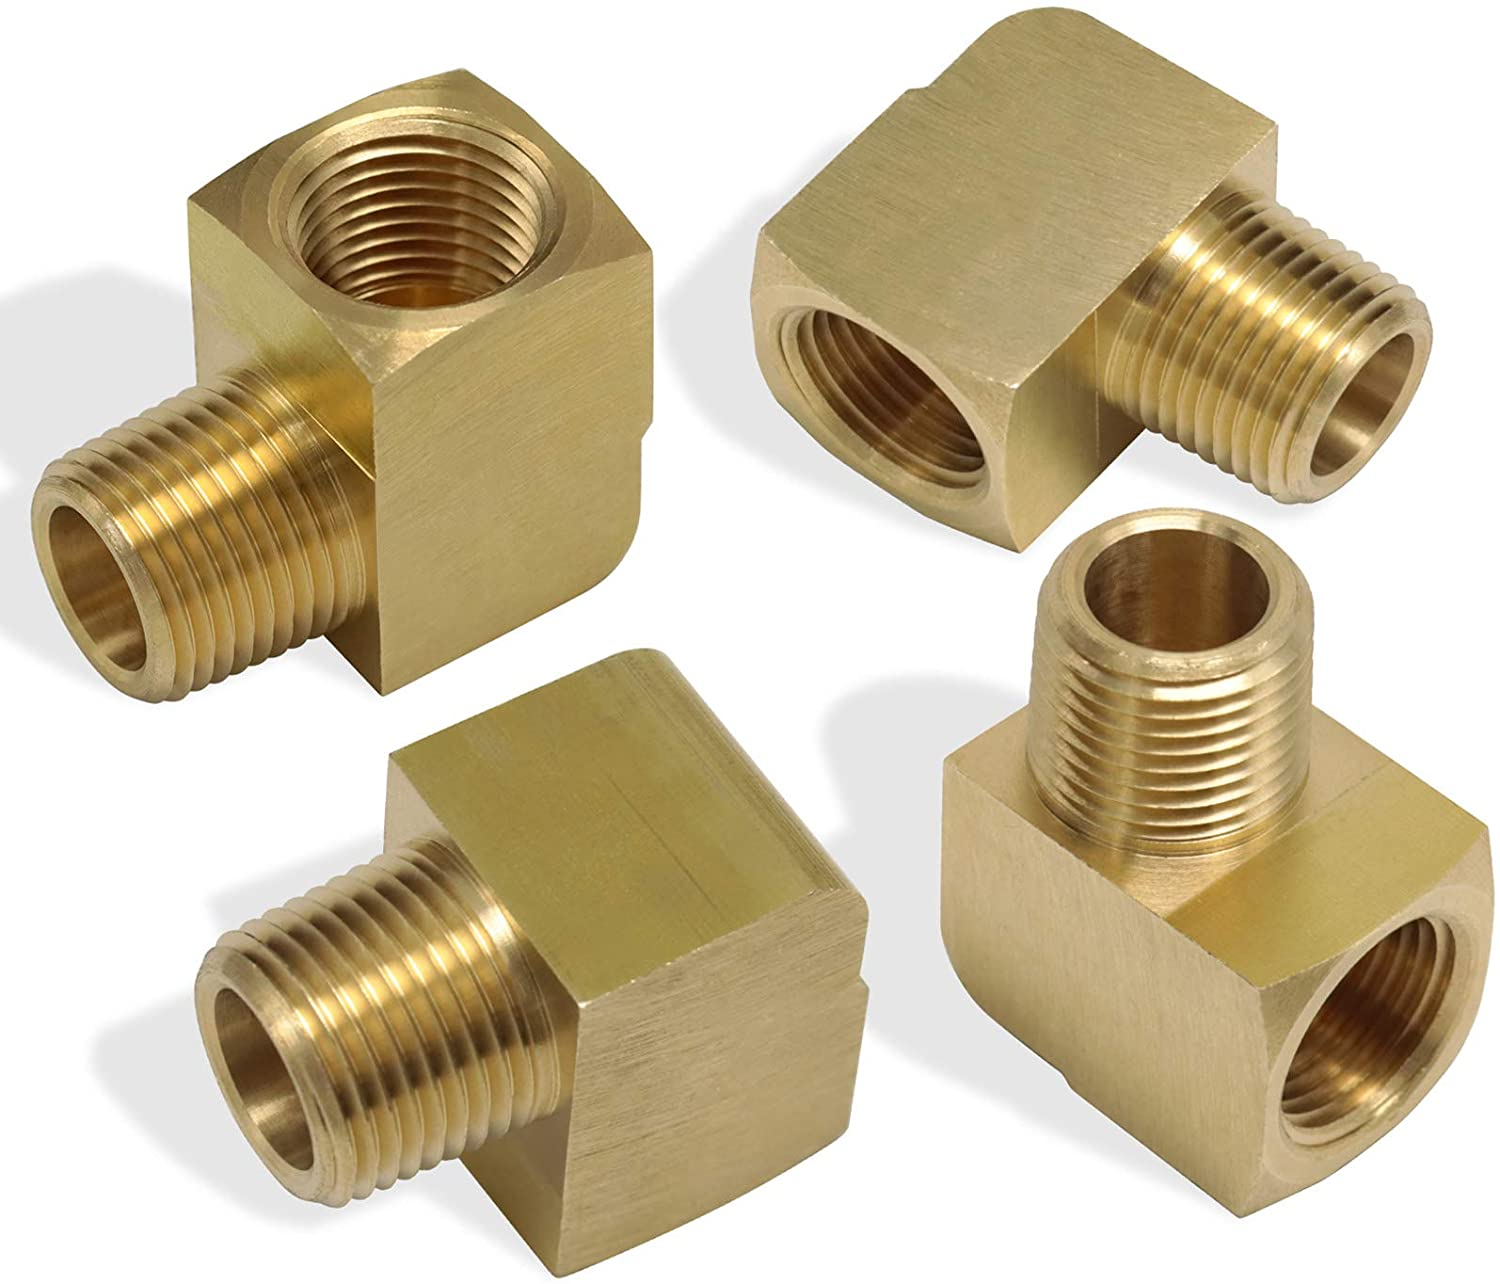 KOOTANS 4pcs 1/8 NPT Elbow Brass Fittings, 1/8 NPT Male to 1/8 NPT Female Thread Brass 90 Degree Street Elbow Forged Brass Pipe Fitting